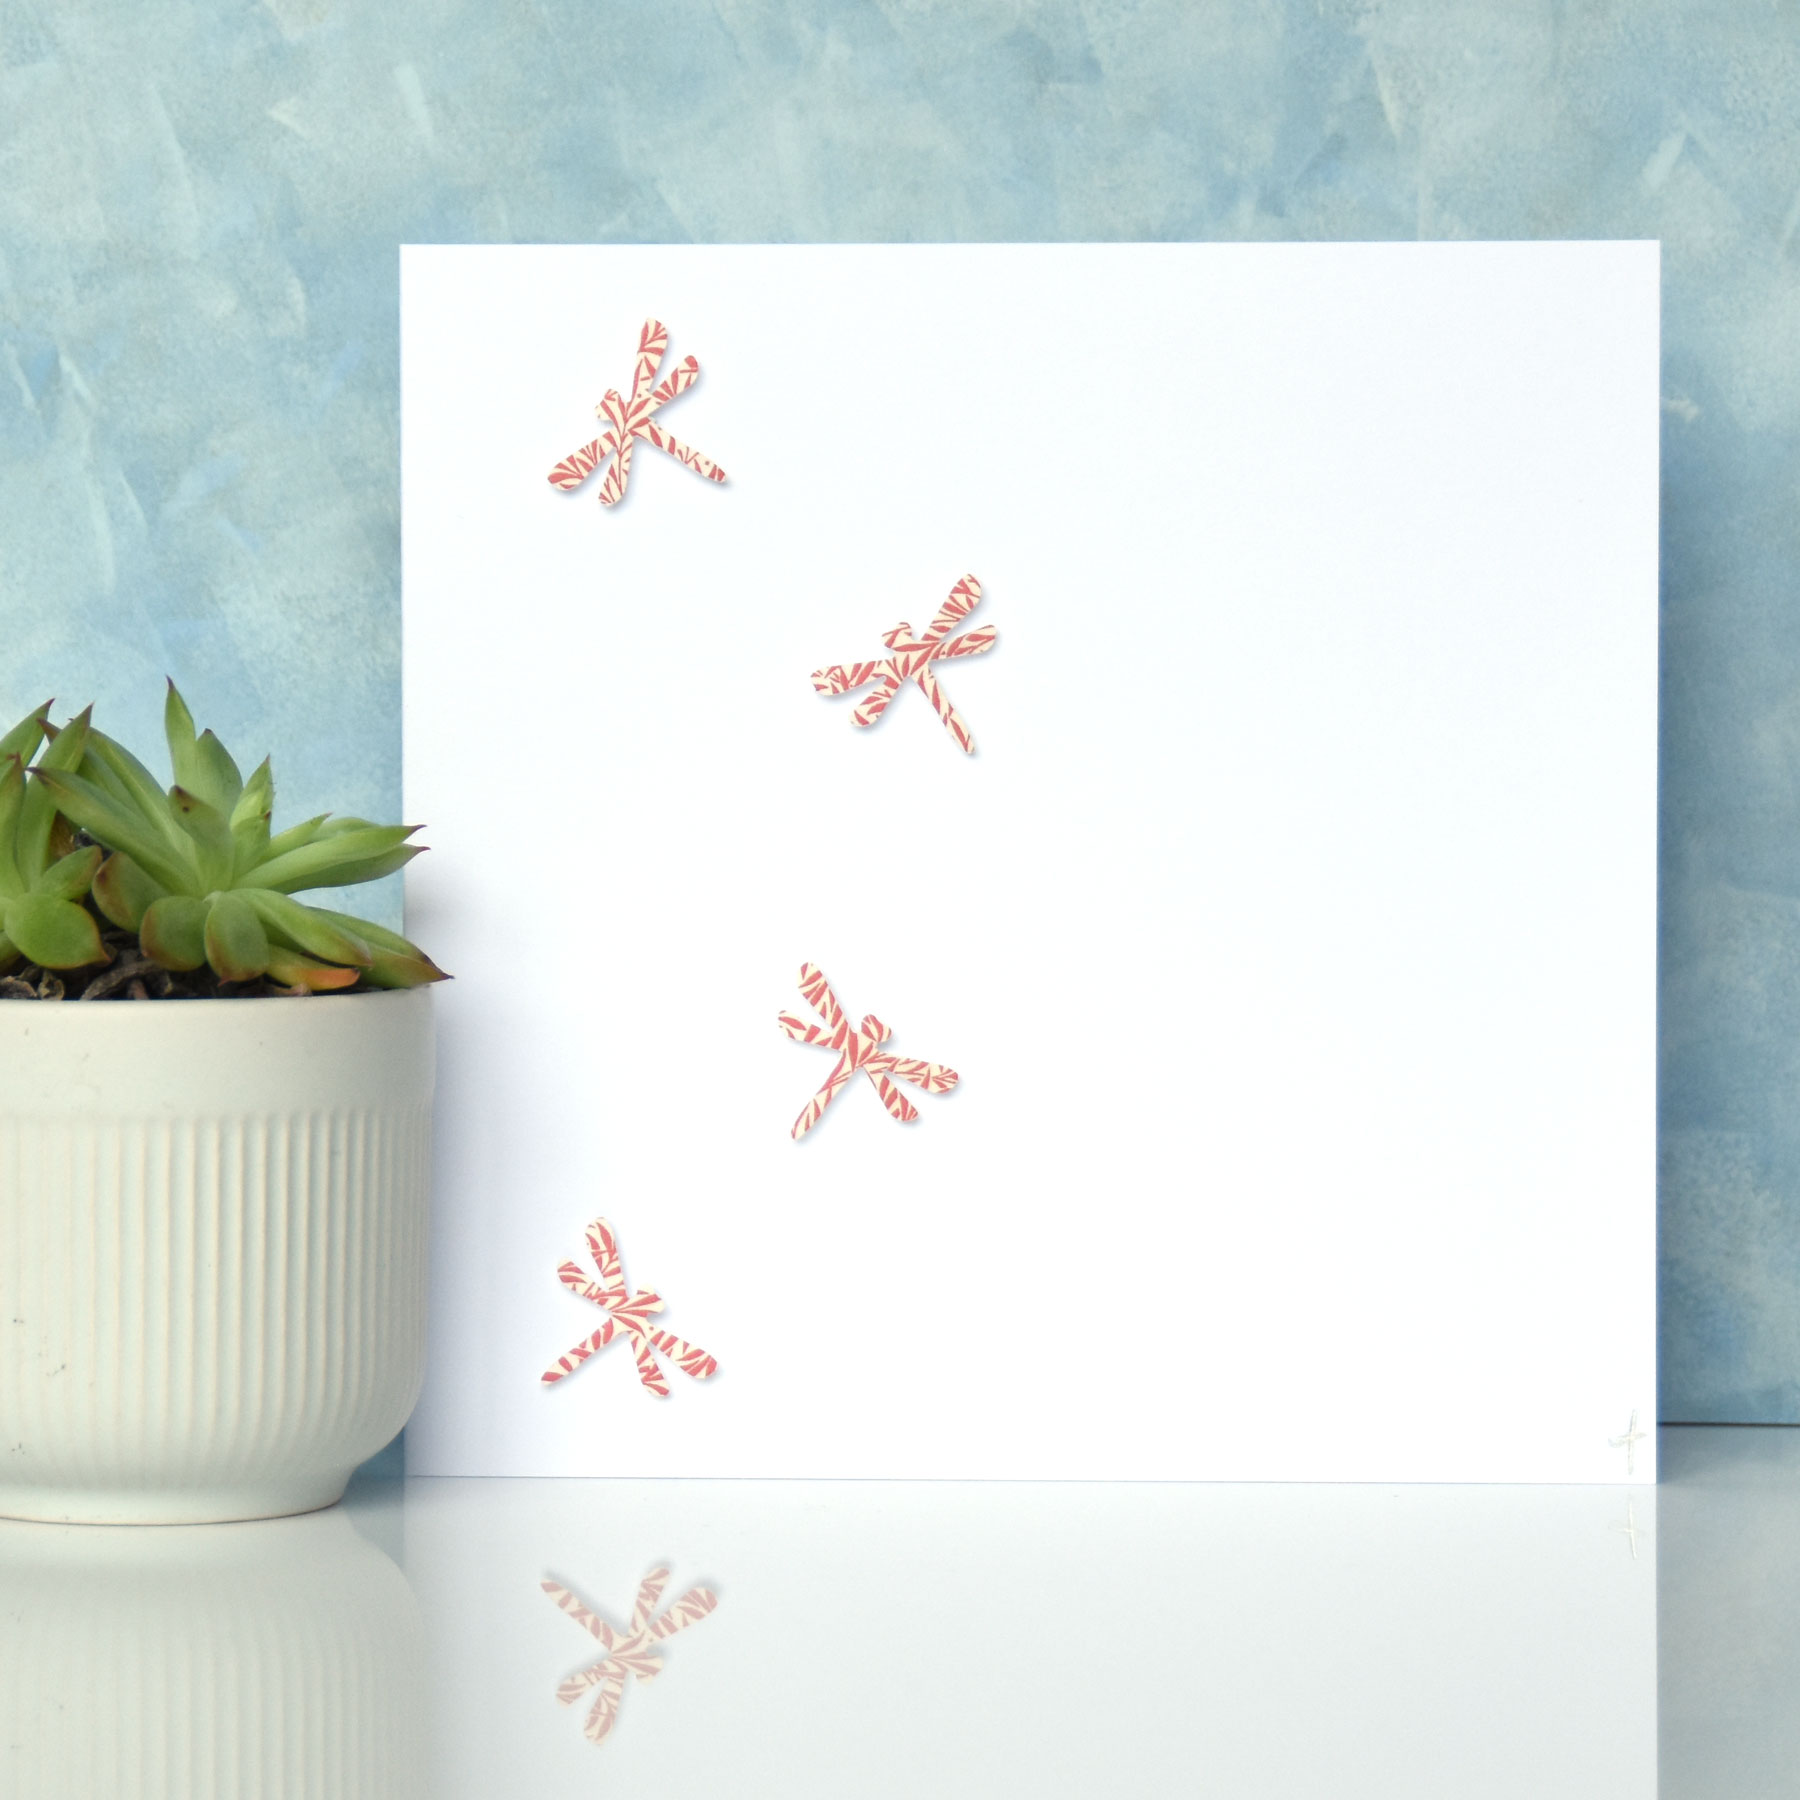 Greeting cards - Handmade cards for sending that special message